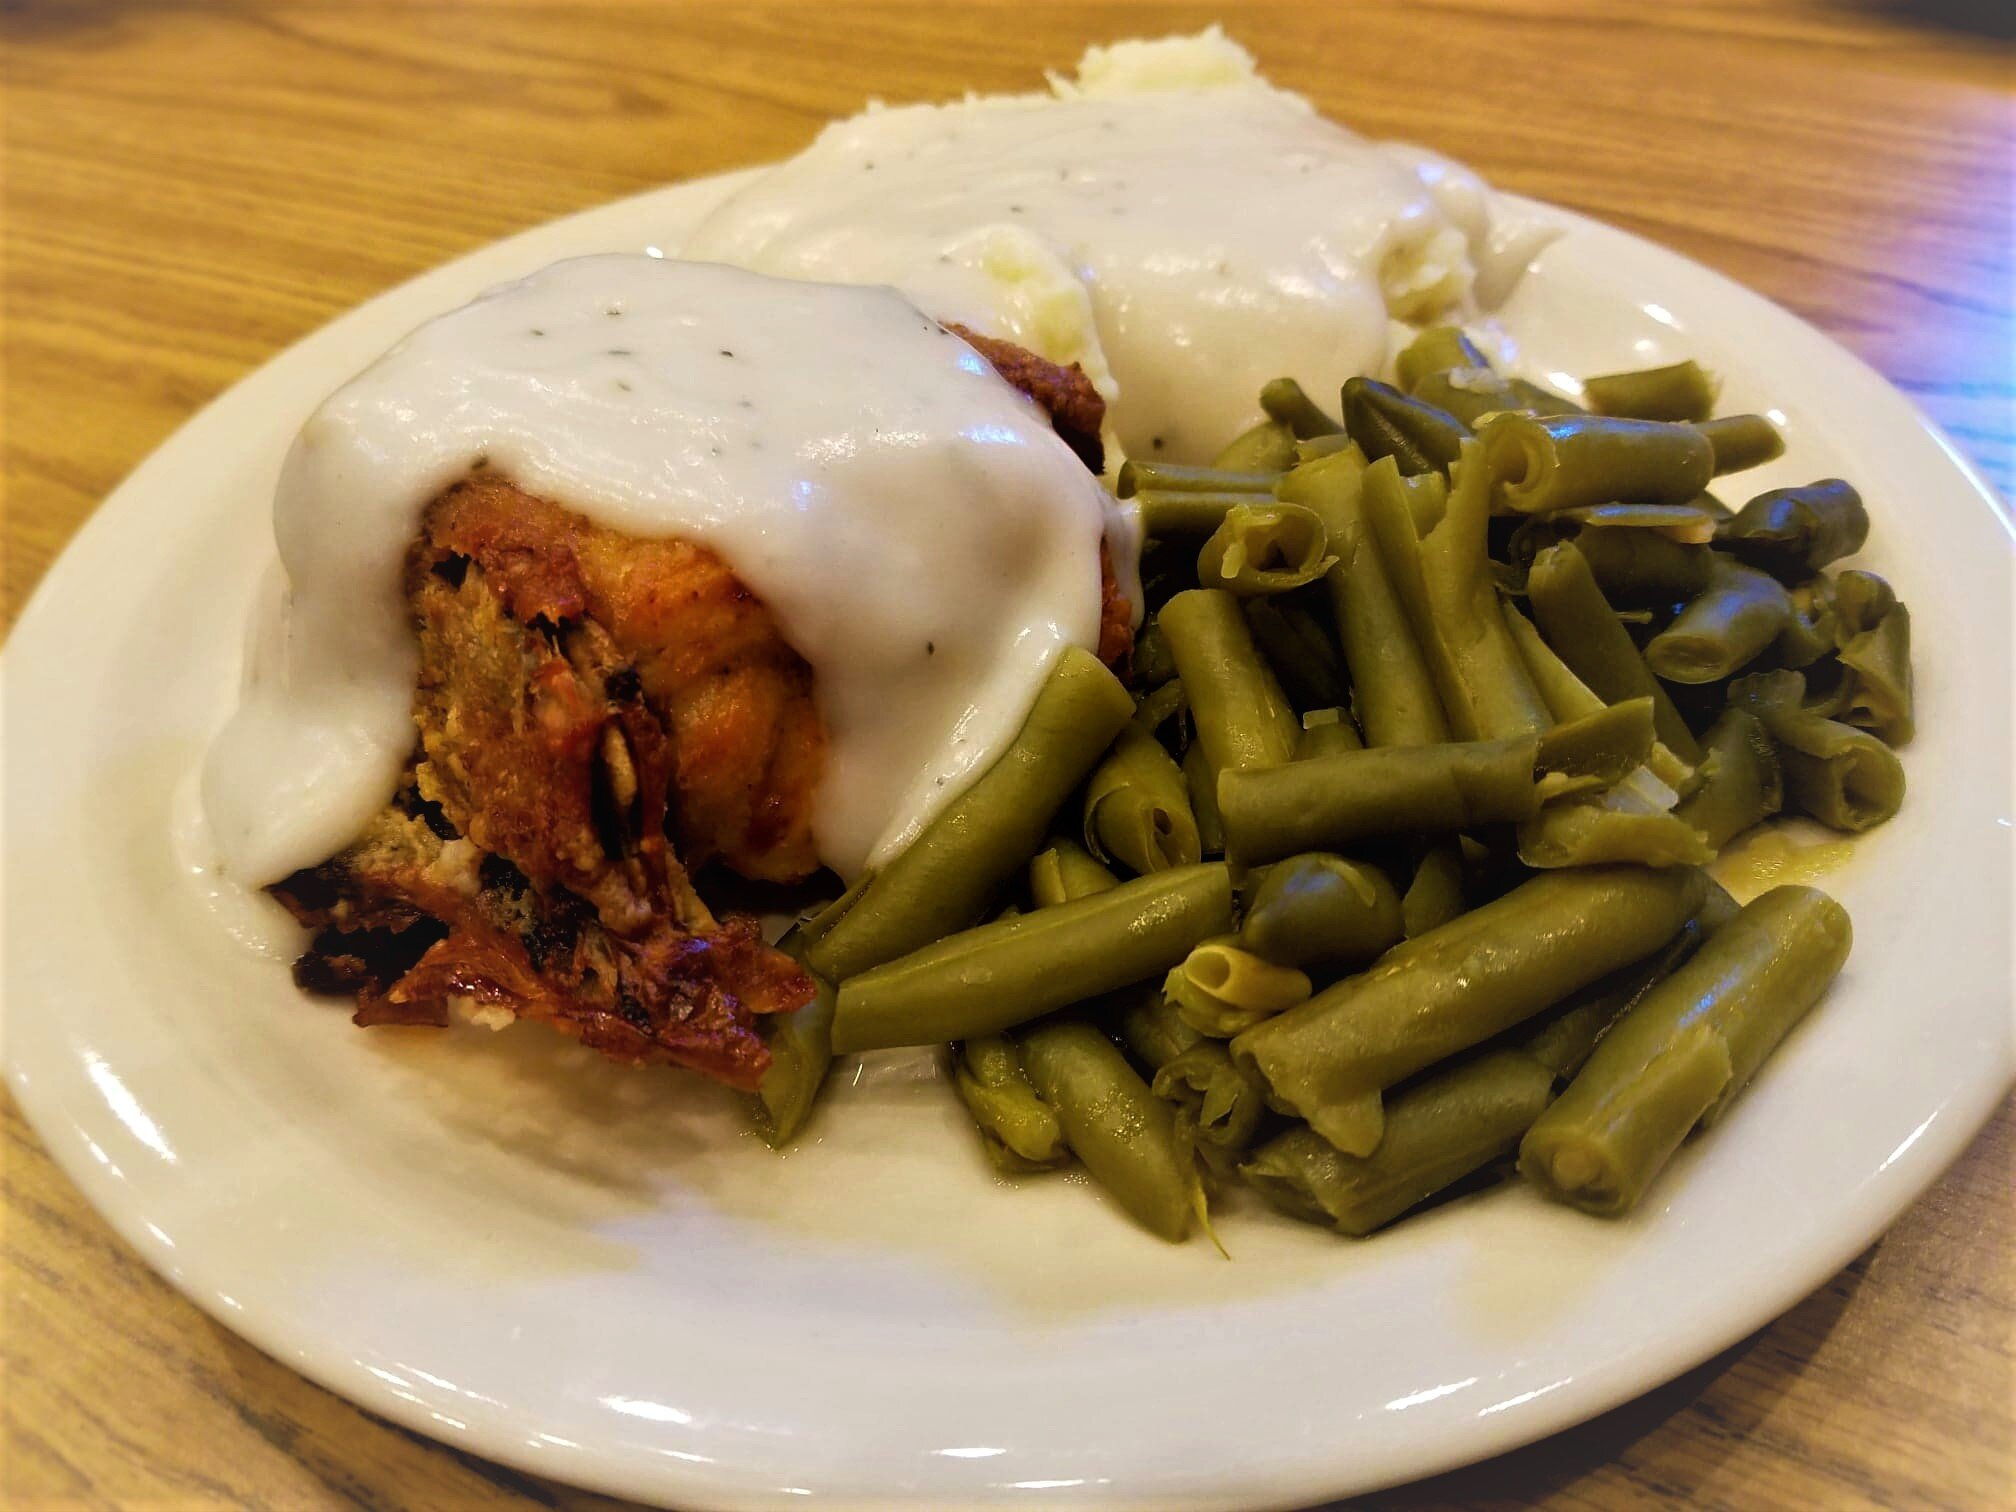 Oven Fried Chicken and Mashed Potatoes in Gravy with Green Beans